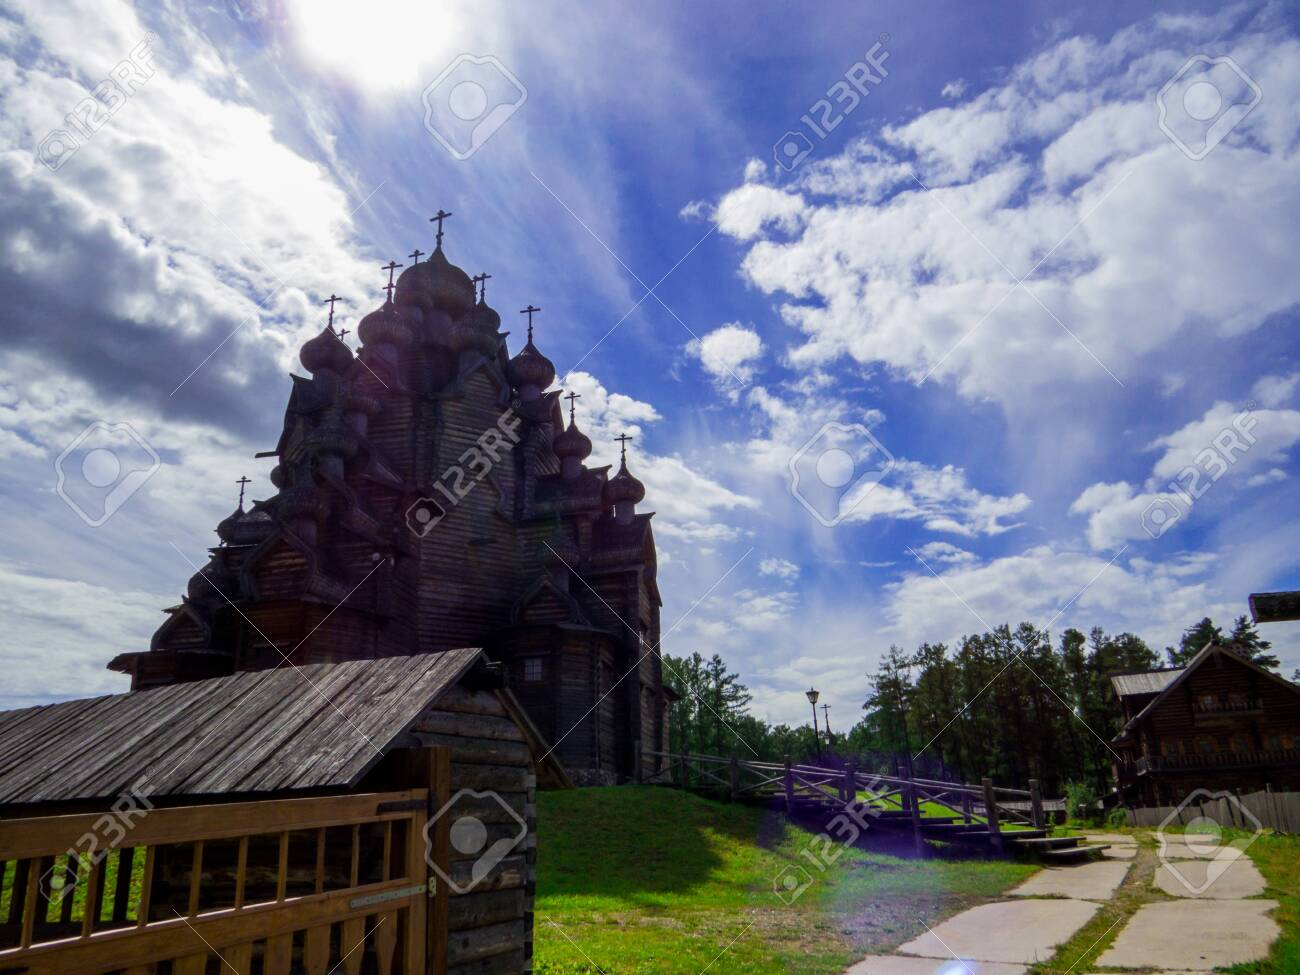 View of the wooden Church of the Intercession of the Holy Virgin in St. Petersburg, Russia - 151391708